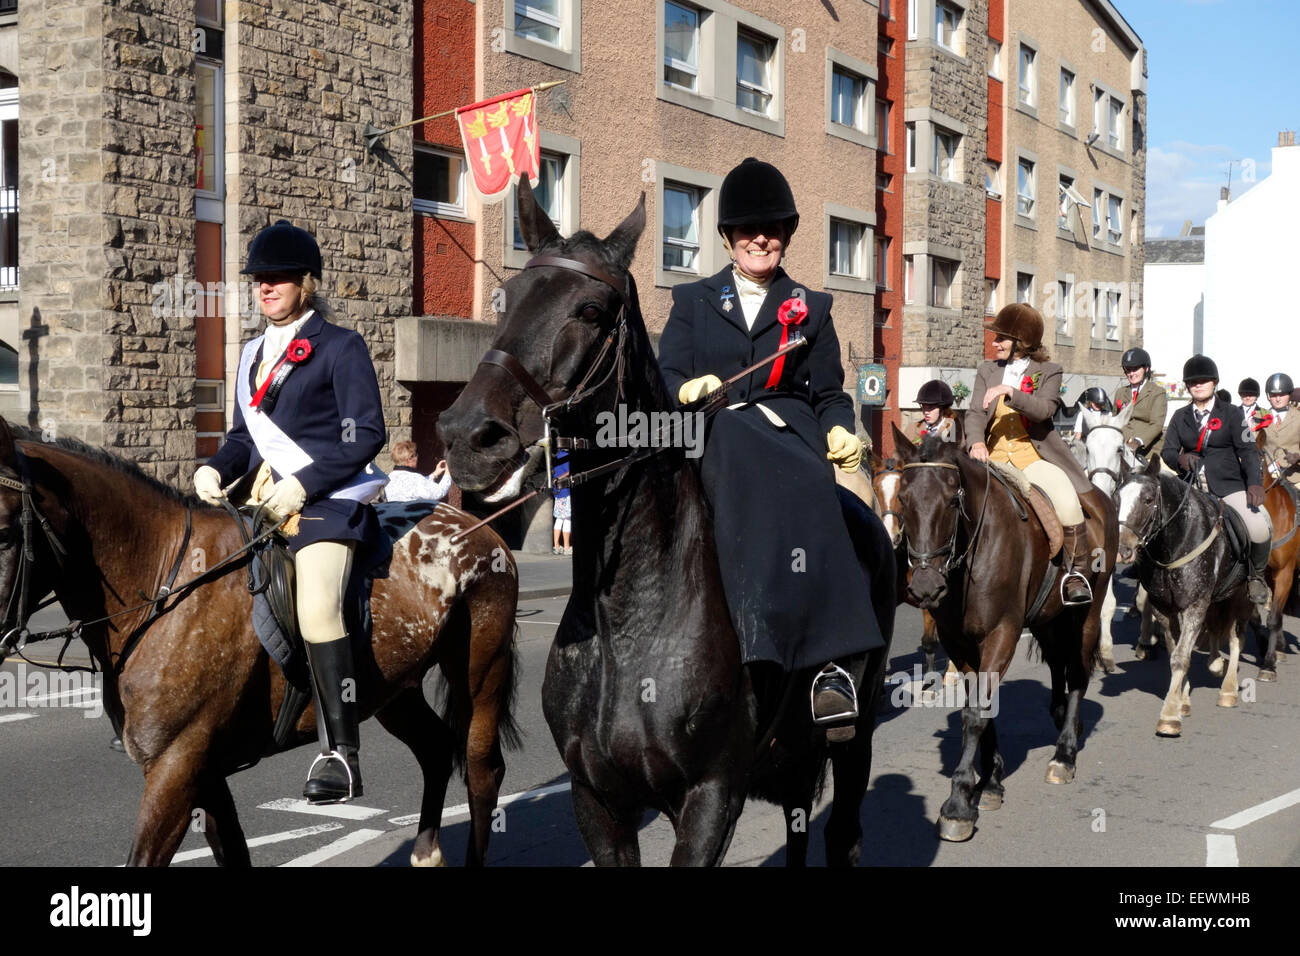 The ride up the Royal Mile in the 2014 Edinburgh Riding of the Marches - Stock Image